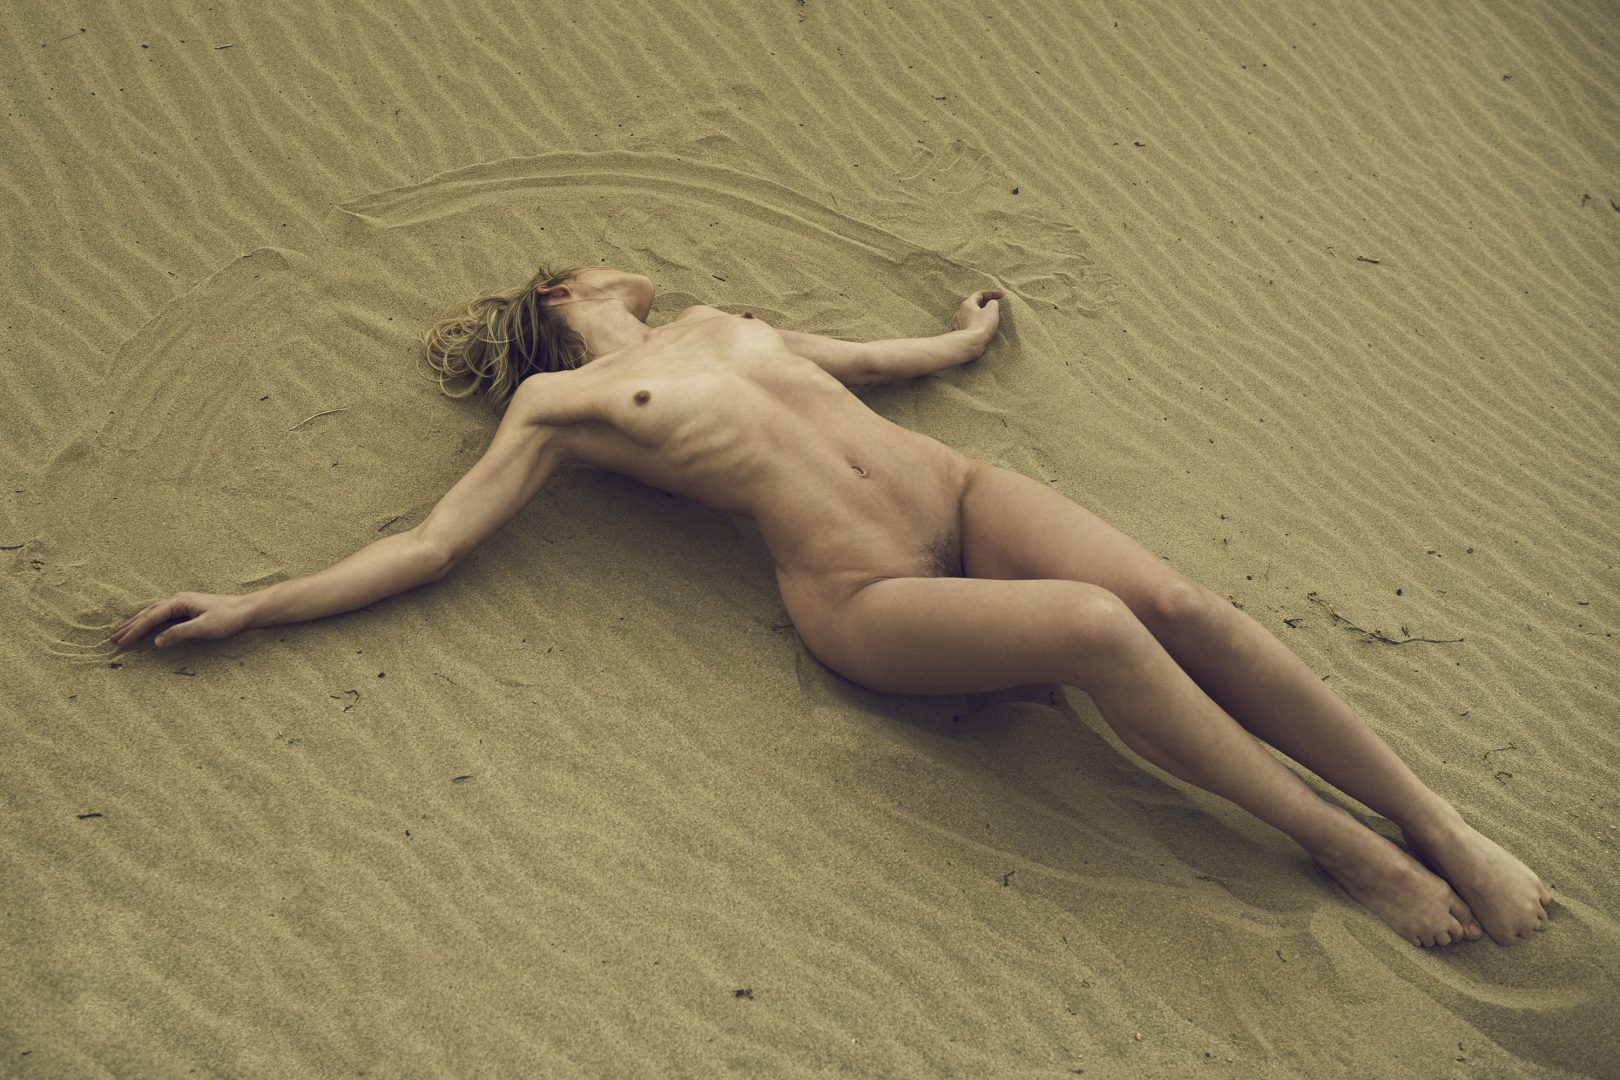 Naked girl lying on the floor in the desert by Stefan Rappo